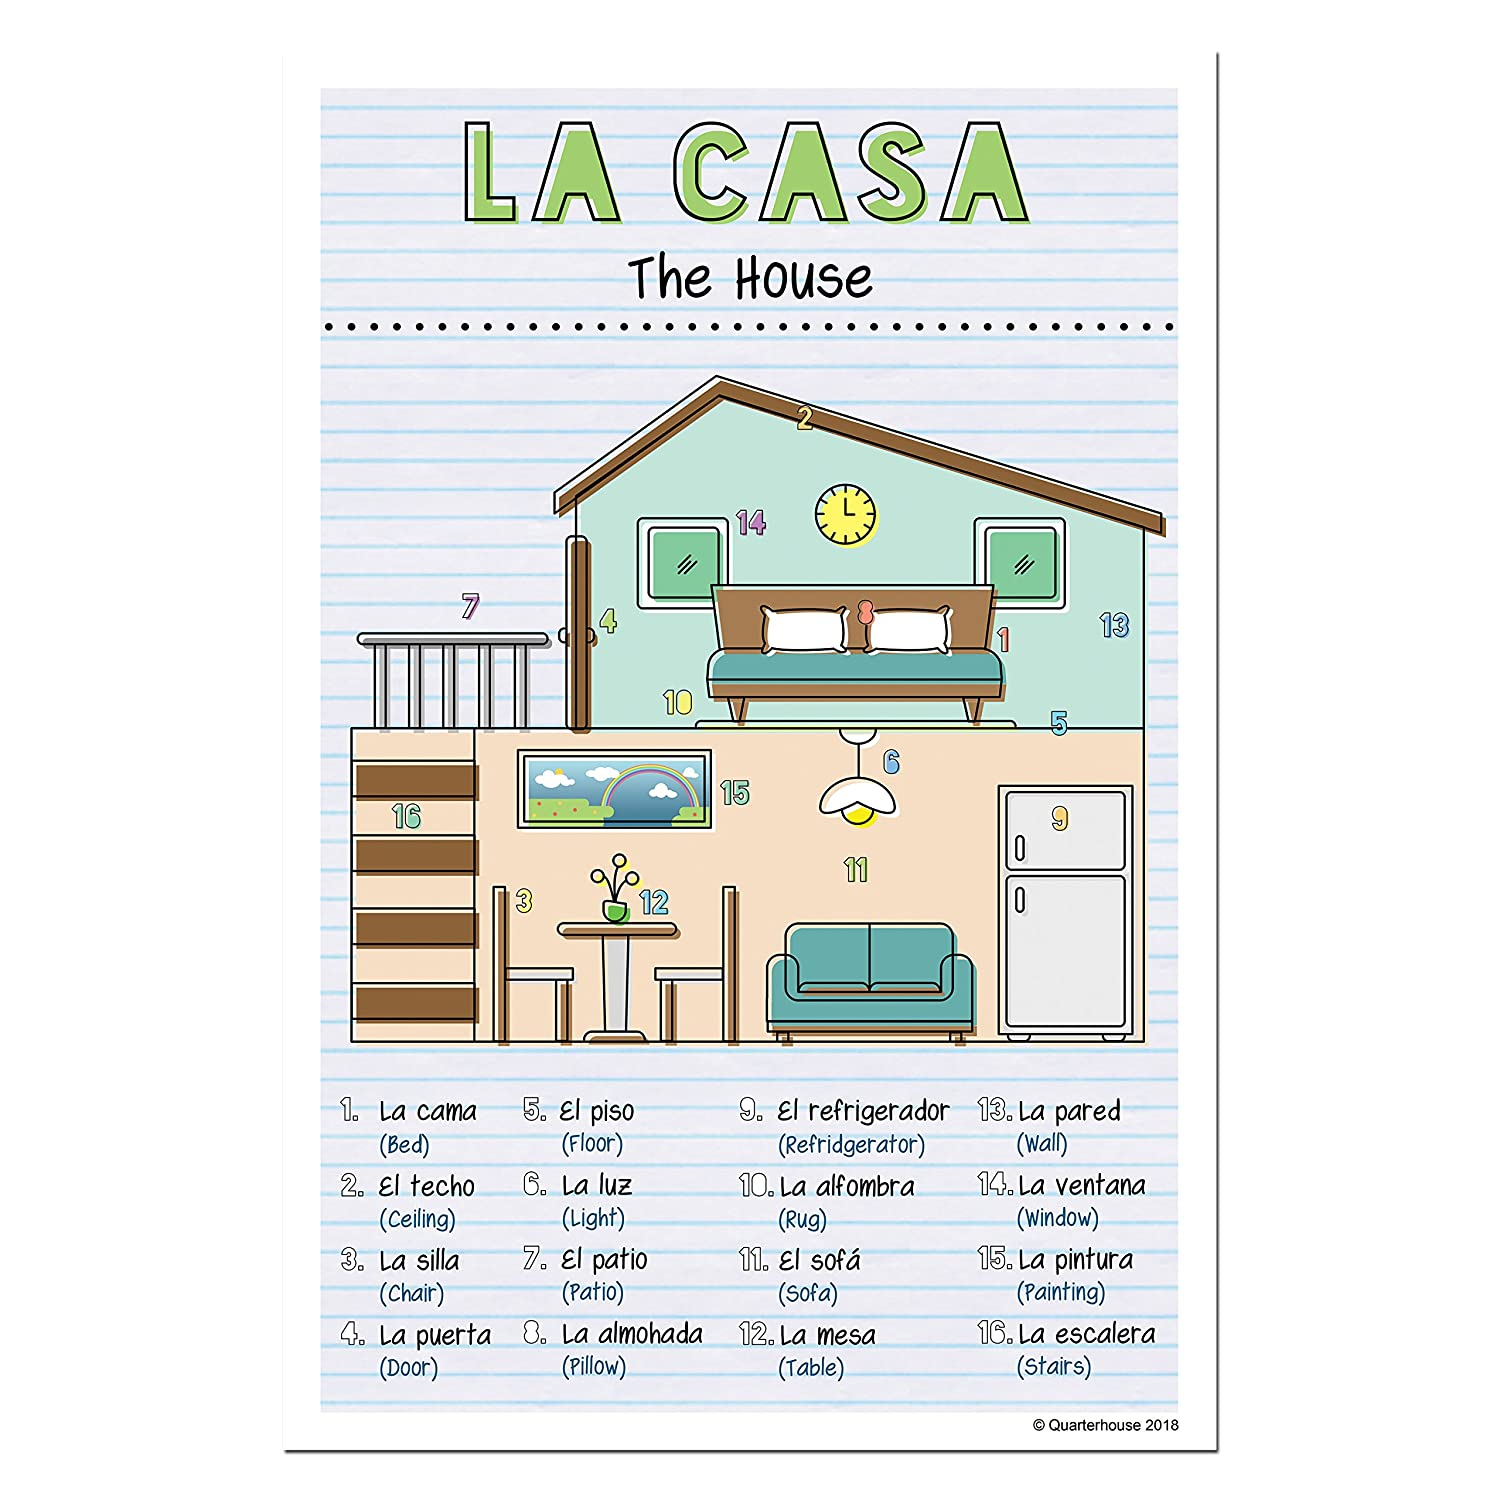 Amazon.com : Spanish Verbs & Beginner Vocabulary Classroom Variety Posters, Set of 11, 12 x 18 inches (Set C) : Office Products